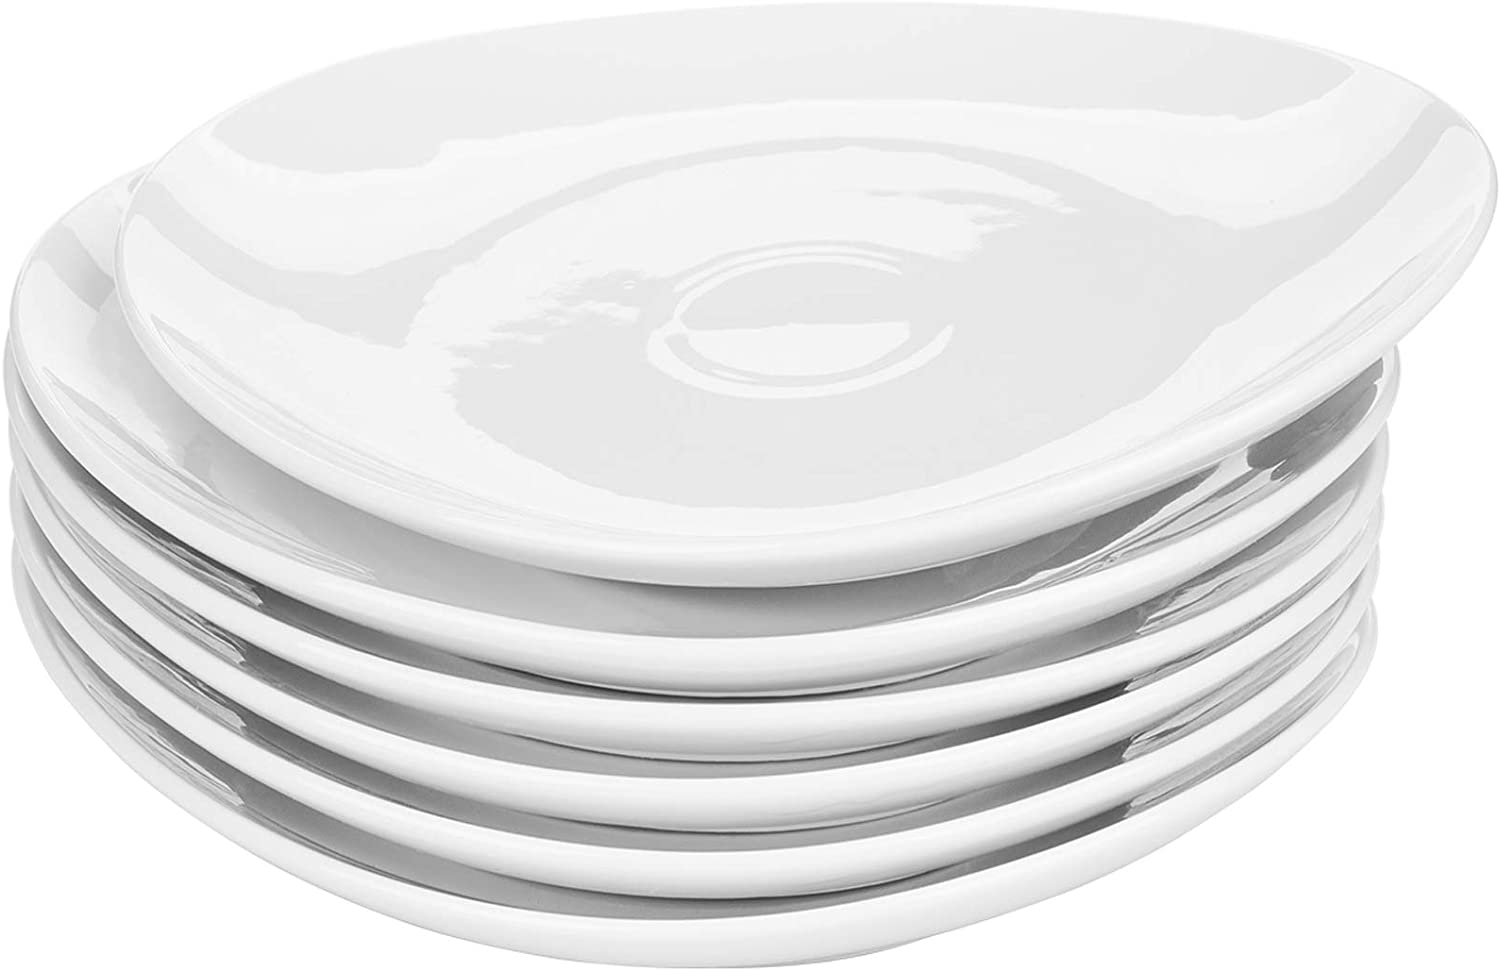 Yarlung 6 Pack 11 Inch Outstanding Porcelain National uniform free shipping Oval Plates Dinner White Salad